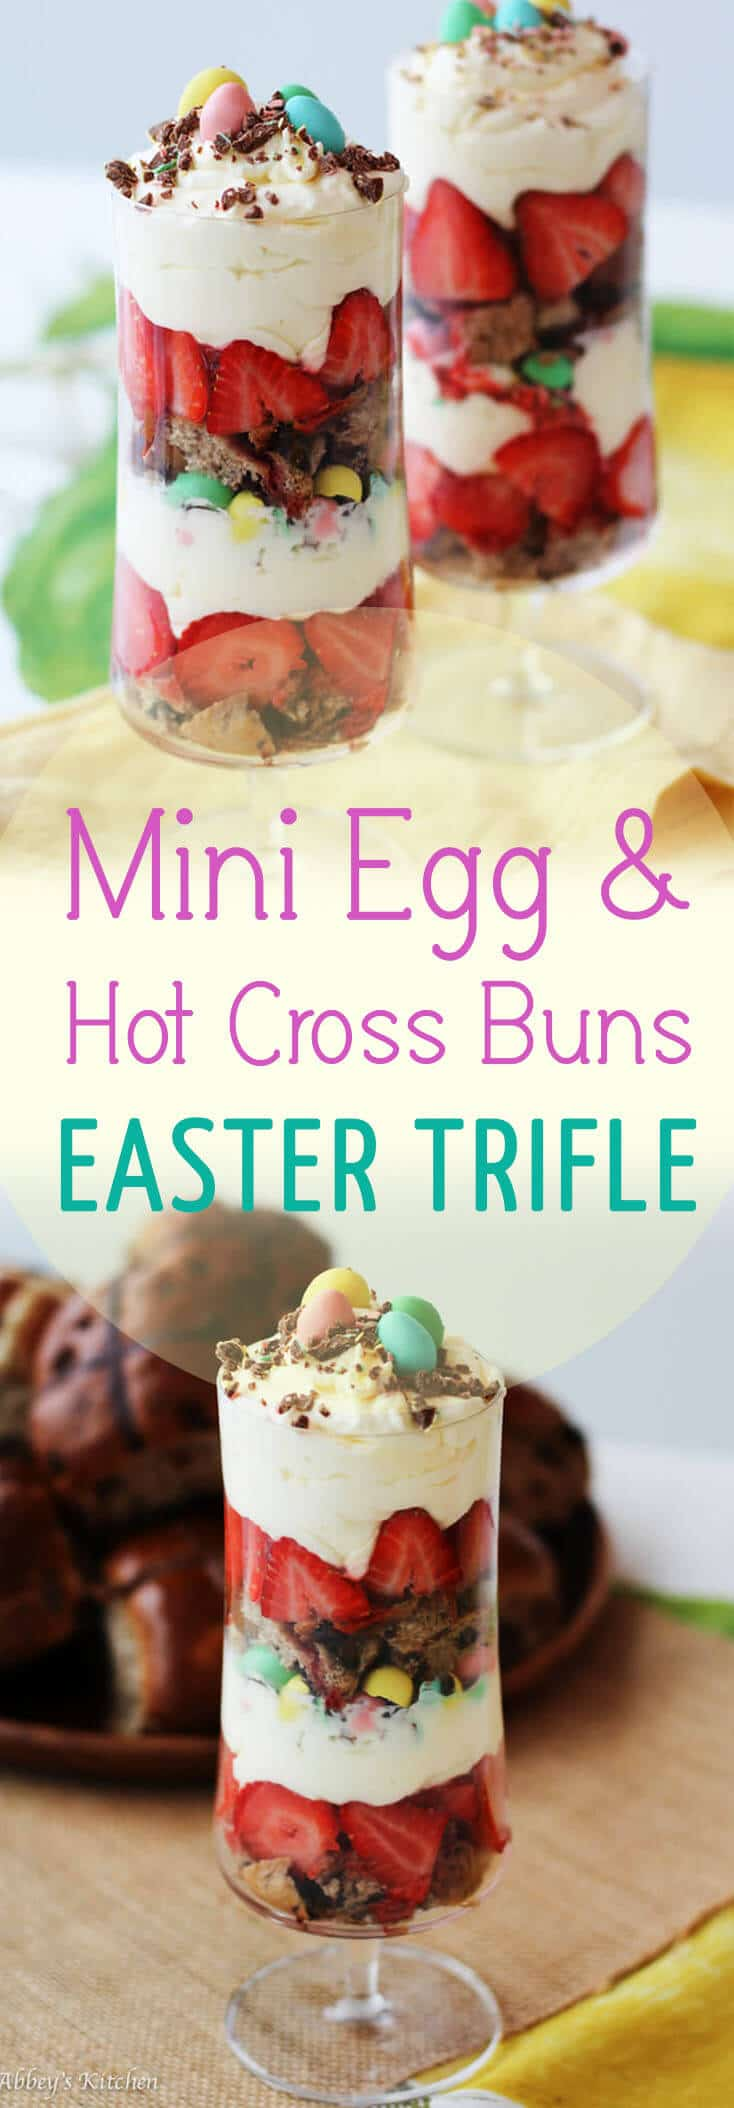 This easy, fun looking Hot Cross Bun and Mini Egg Trifle is perfect for entertaining this easter!